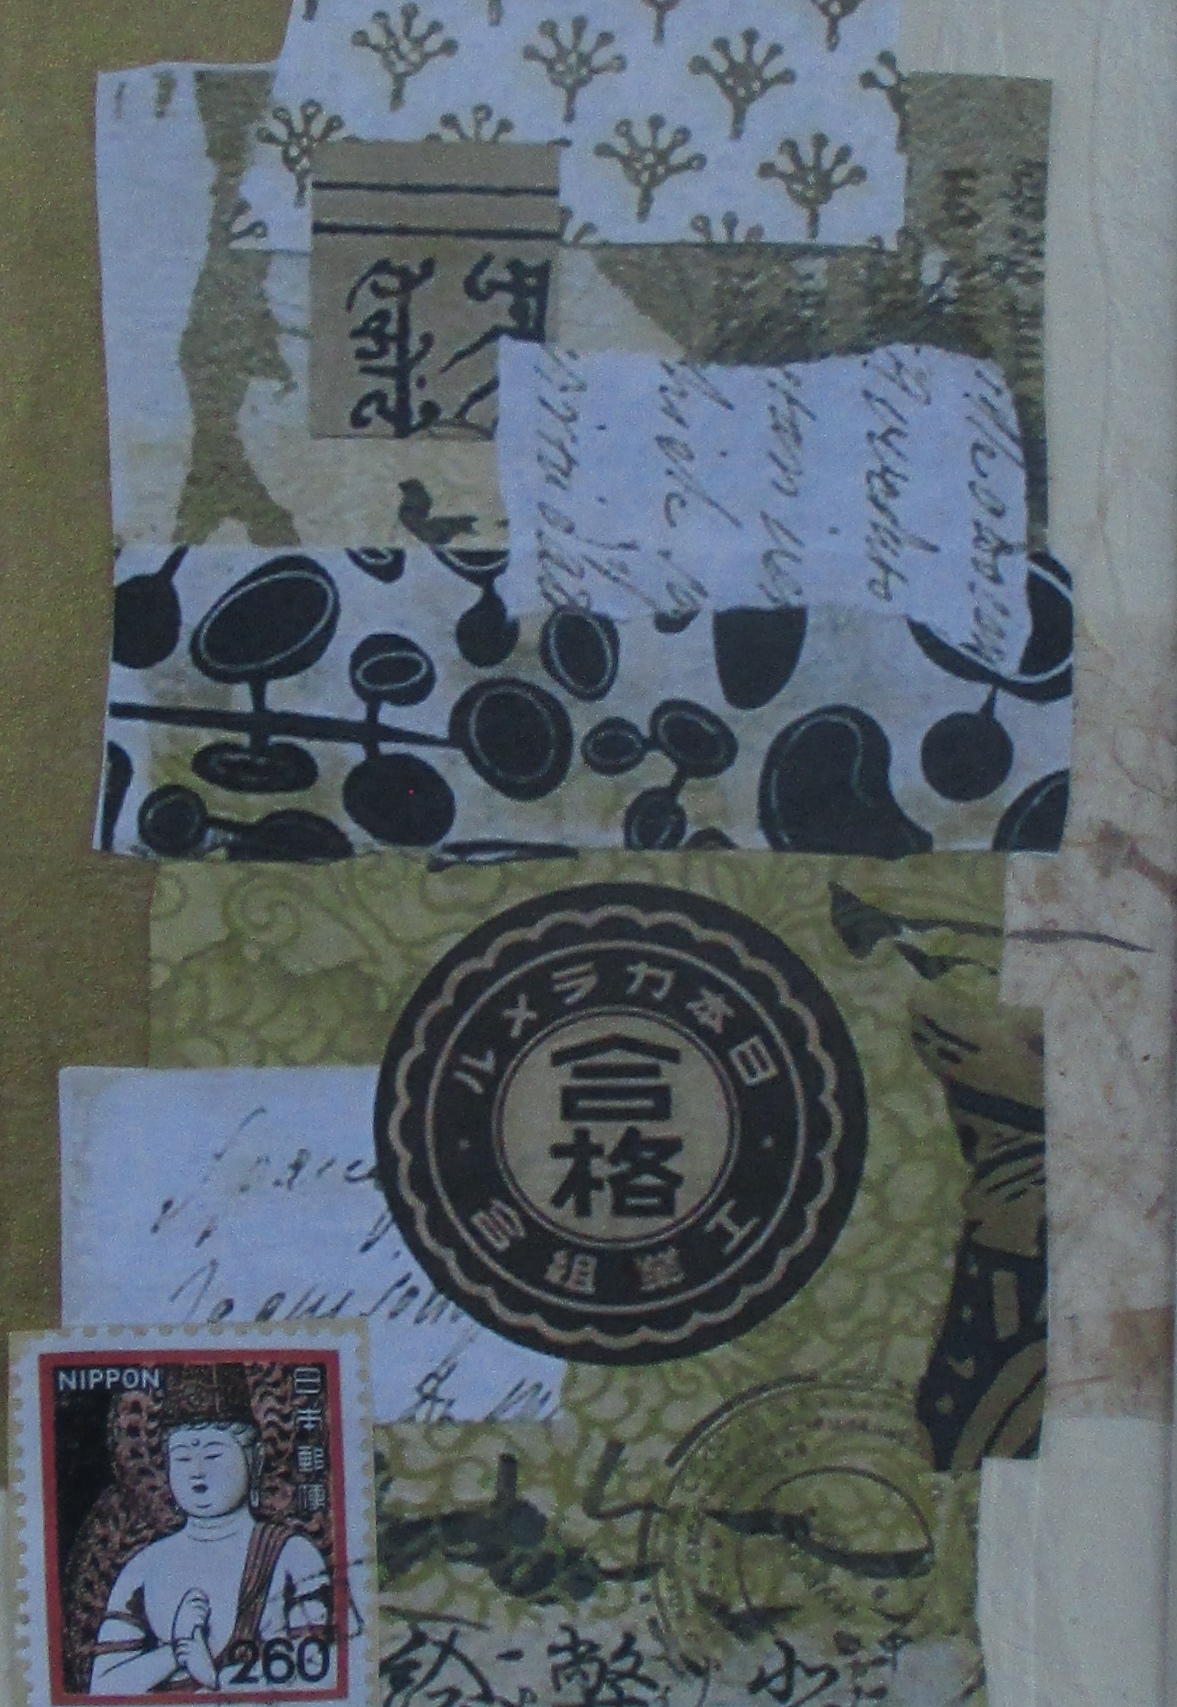 Gold Medallion ゴールドメダリオン Gōrudomedarion Collage, 11 x 14, matted